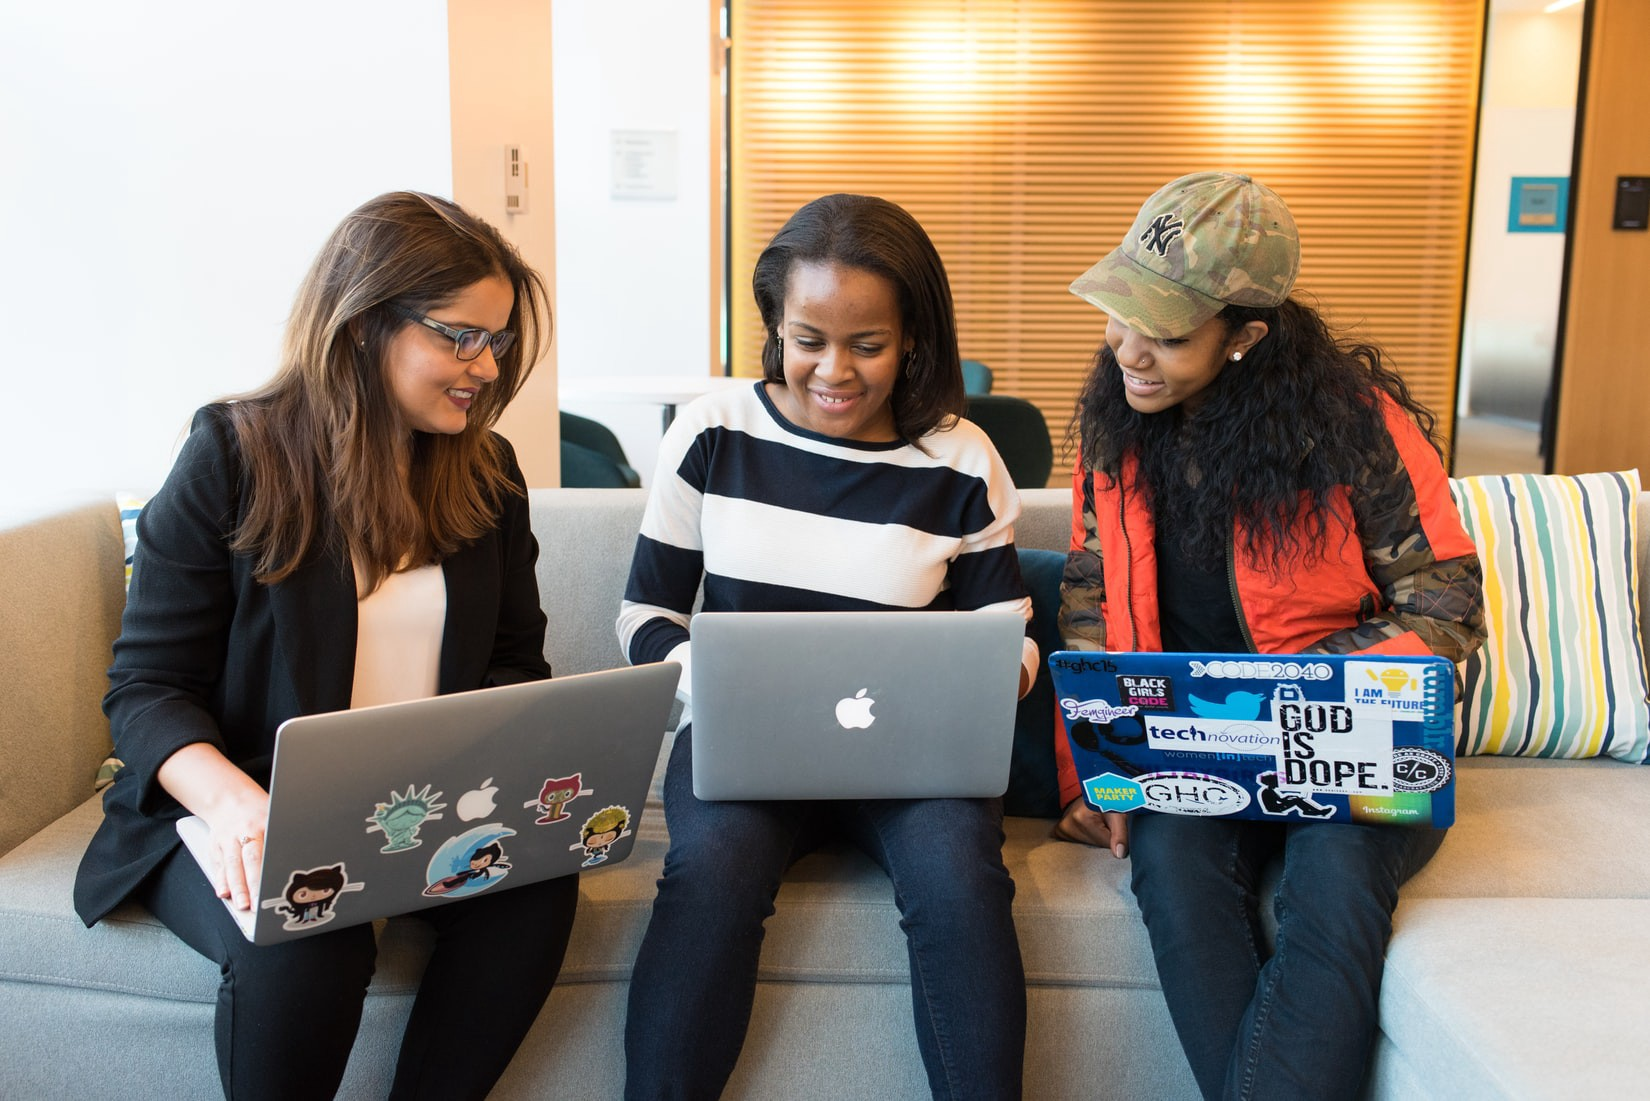 Two dark-skinned and one light-skinned women sitting on a couch with laptops